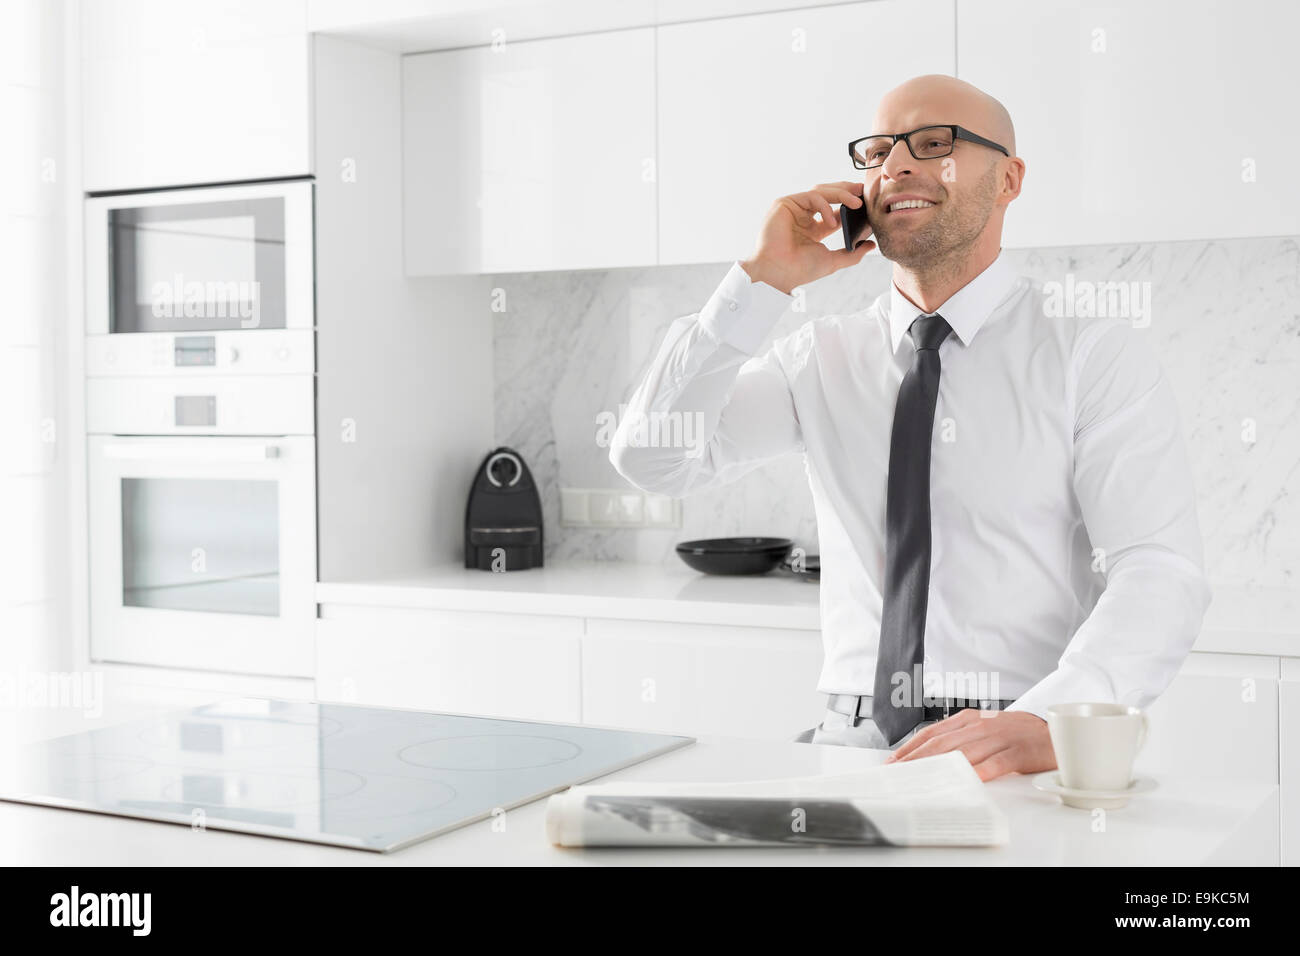 Mid adult businessman on call at kitchen counter - Stock Image